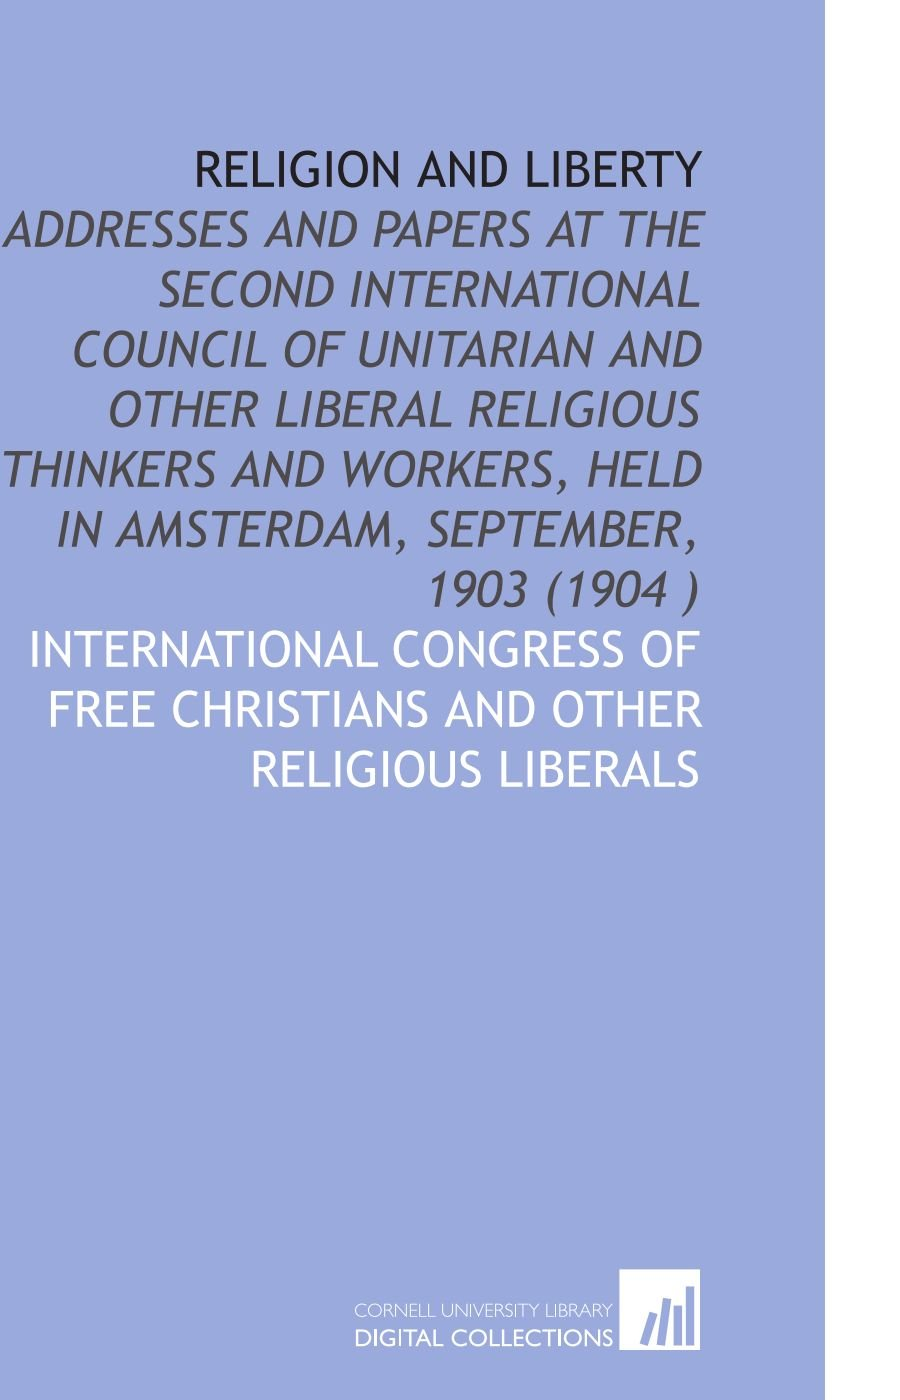 Download Religion and Liberty: Addresses and Papers at the Second International Council of Unitarian and Other Liberal Religious Thinkers and Workers, Held in Amsterdam, September, 1903 (1904 ) PDF